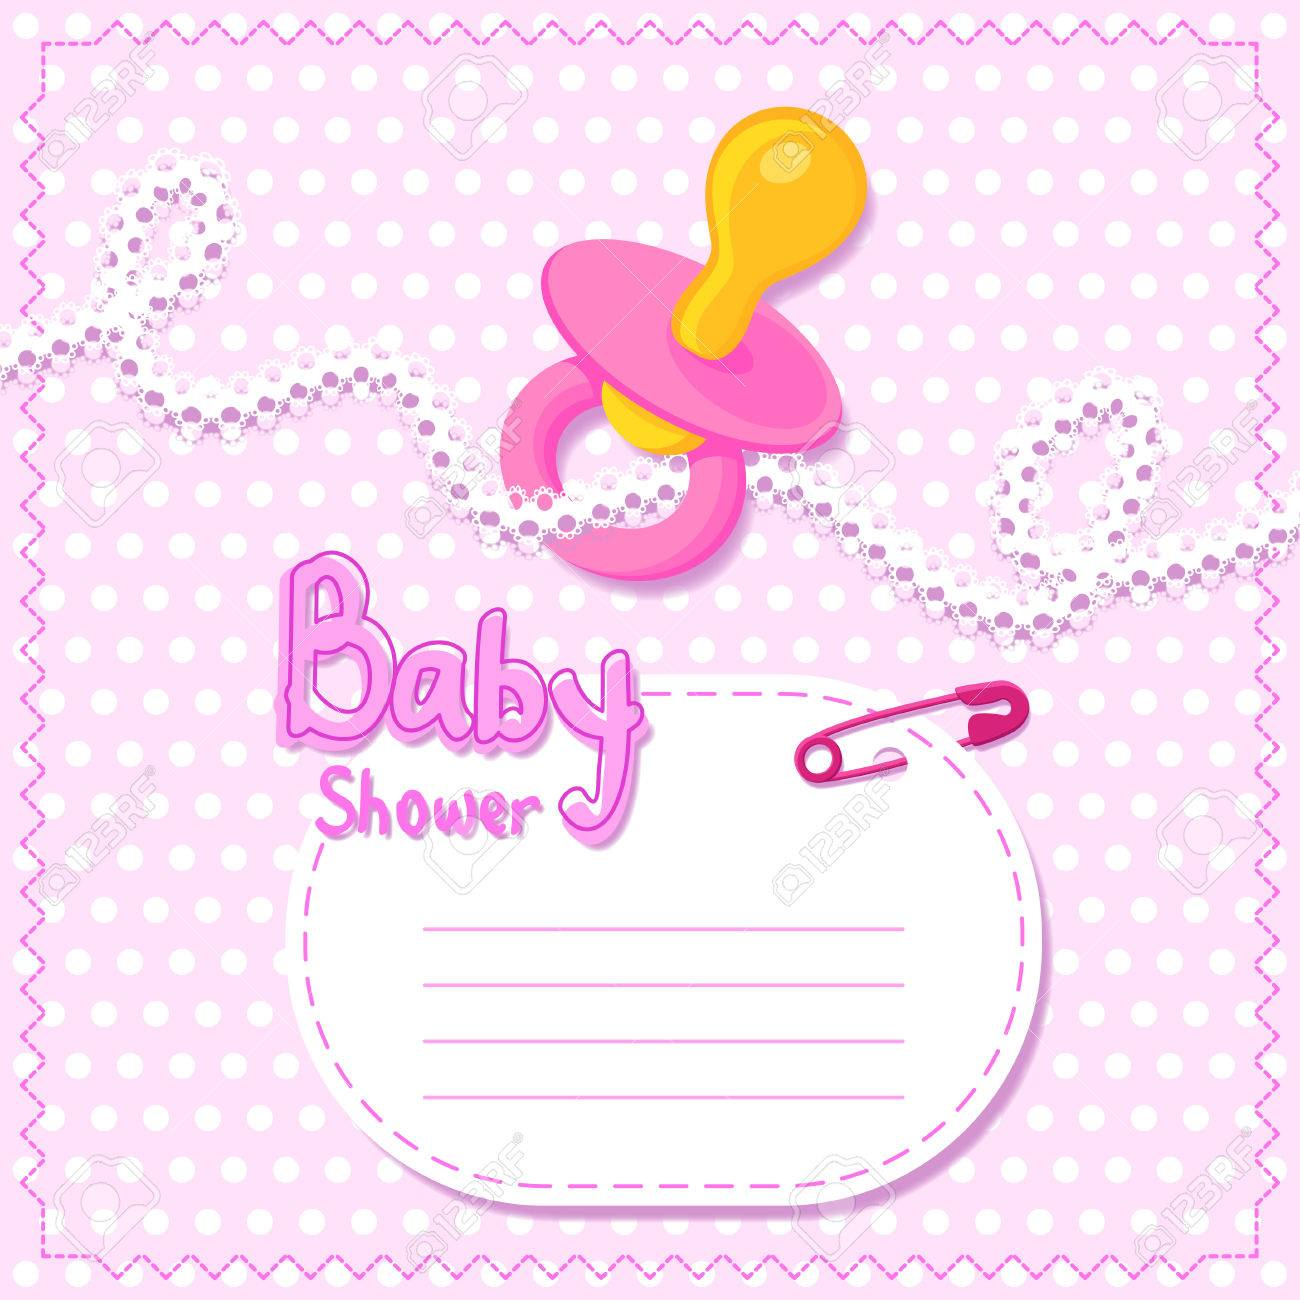 Baby Shower Card Templates. baby shower ideas free printable baby ...